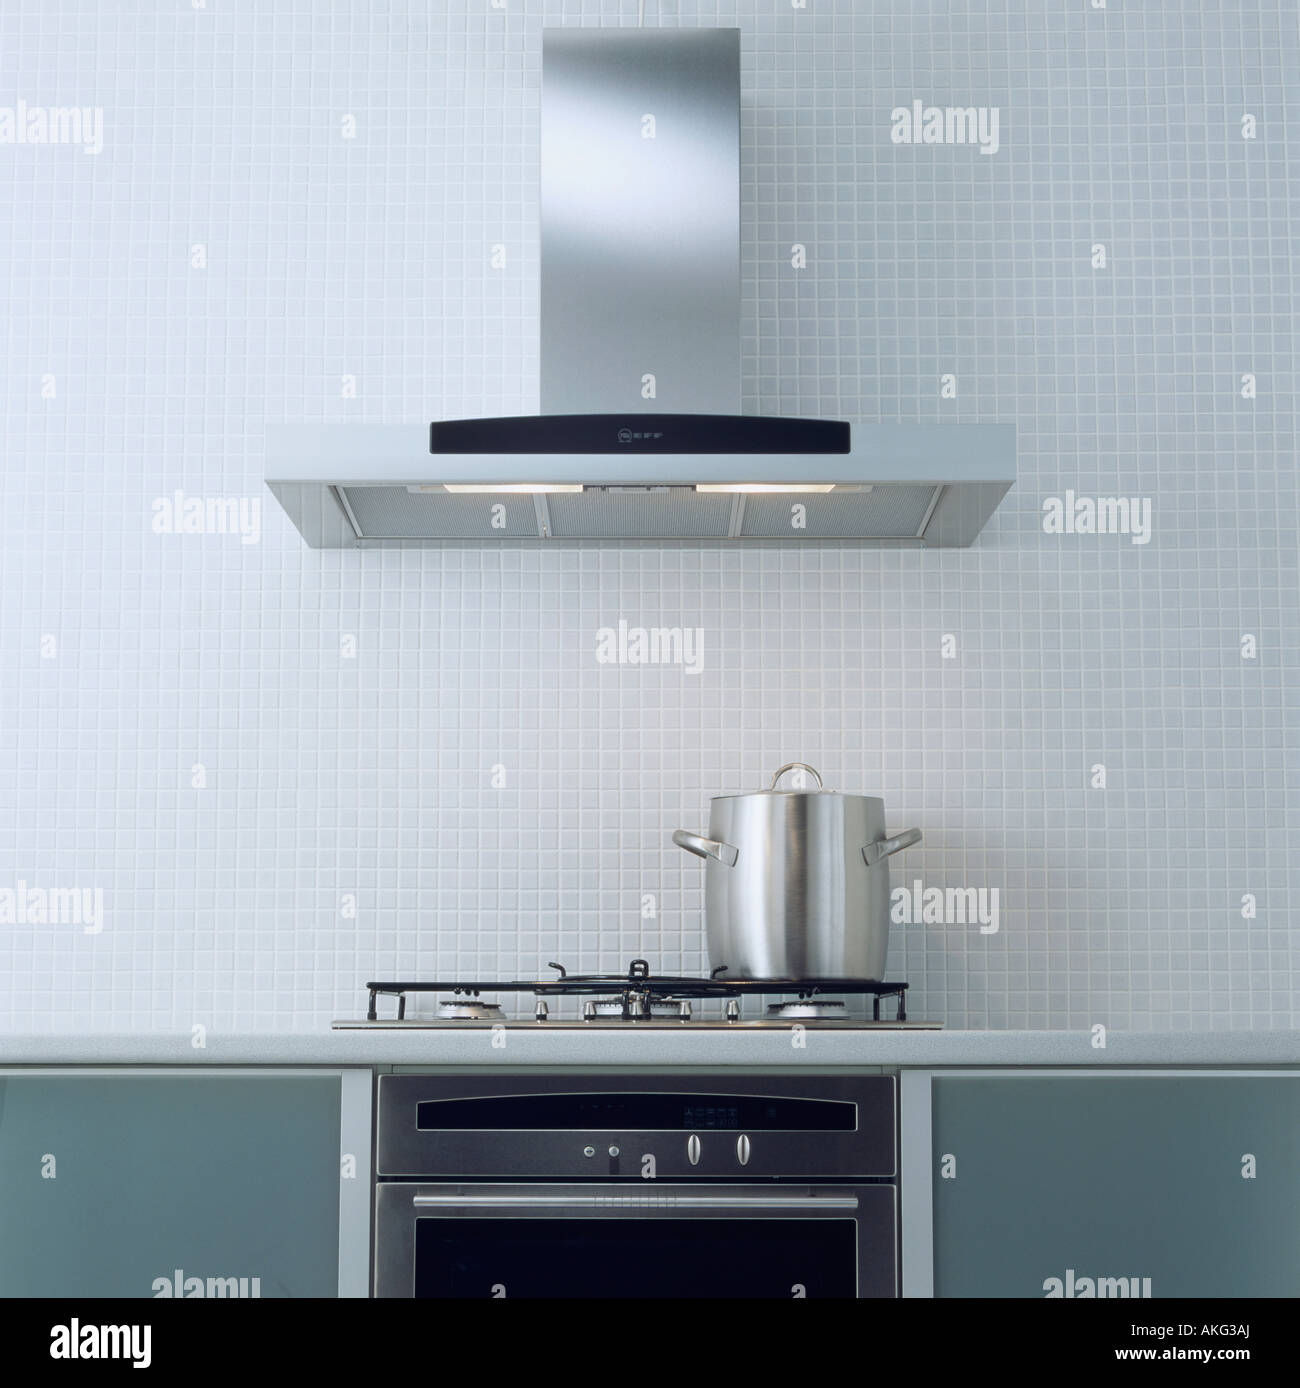 Modern Kitchen Extractor Fans stainless steel extractor fan above pan on hob in modern kitchen